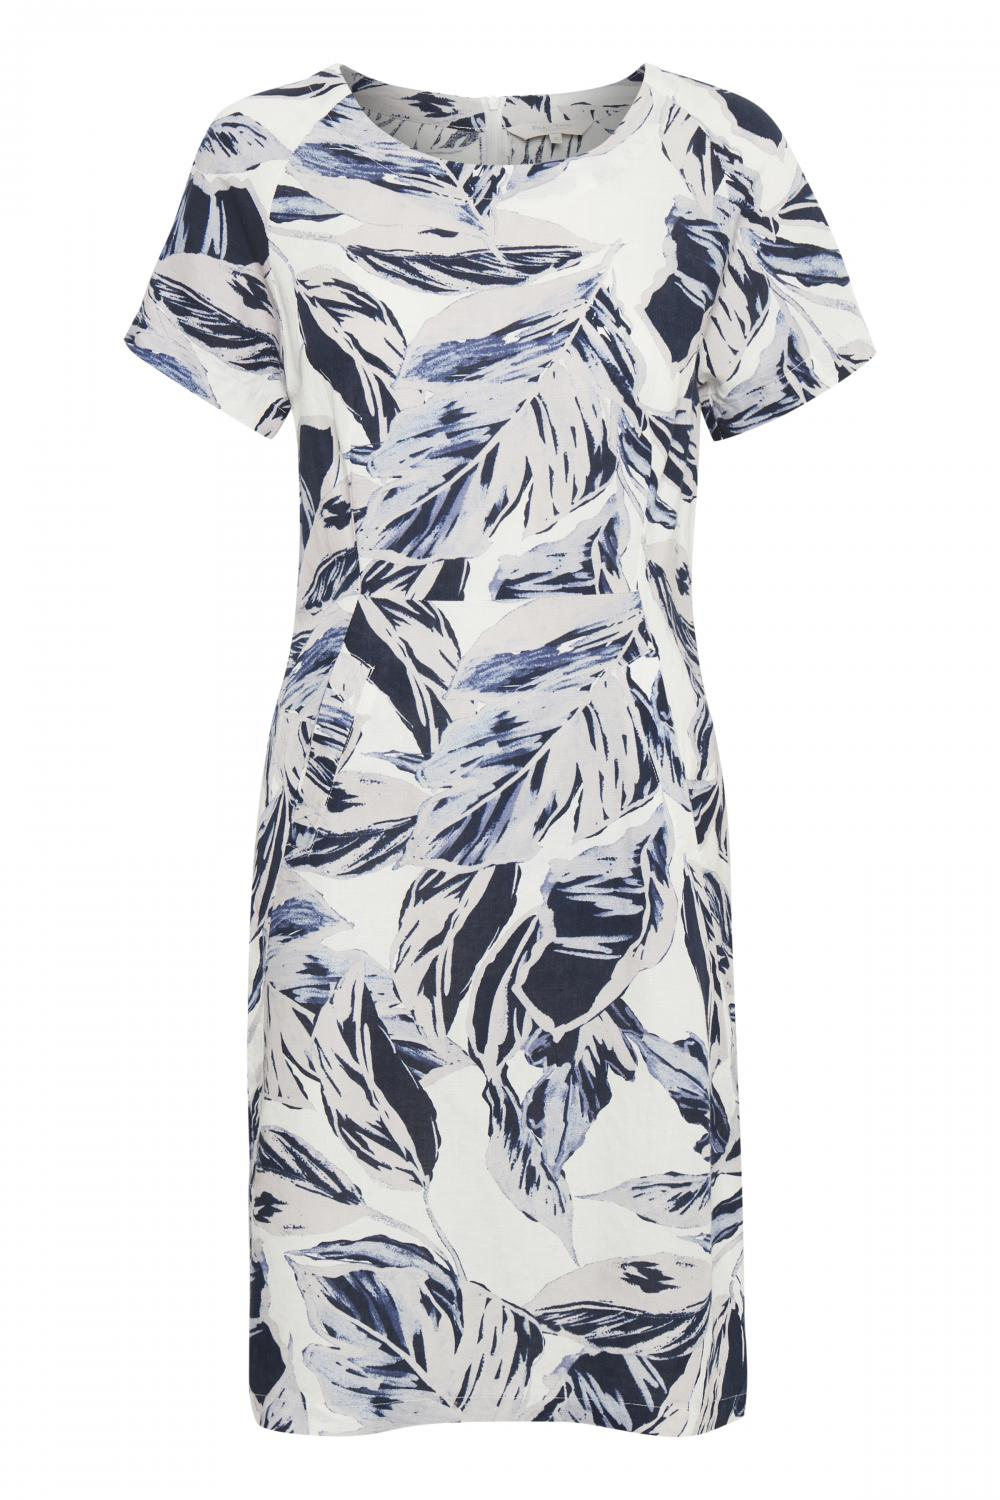 IndreasPW DR Blue Palm Print